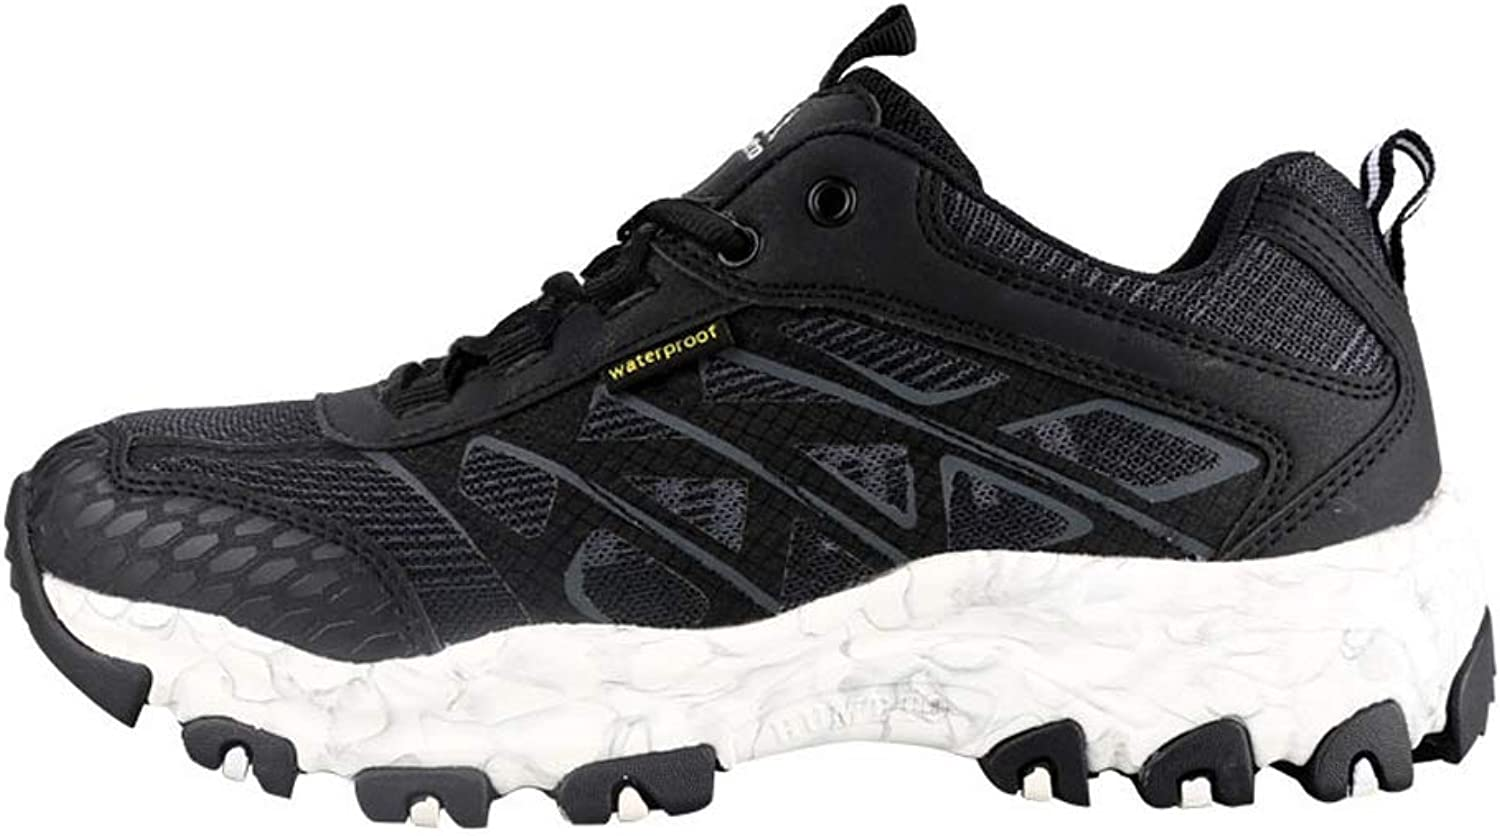 SHUX Hiking shoes, Non-Slip Sports, Outdoor shoes, Breathable, Lightweight Mountain Climbing shoes